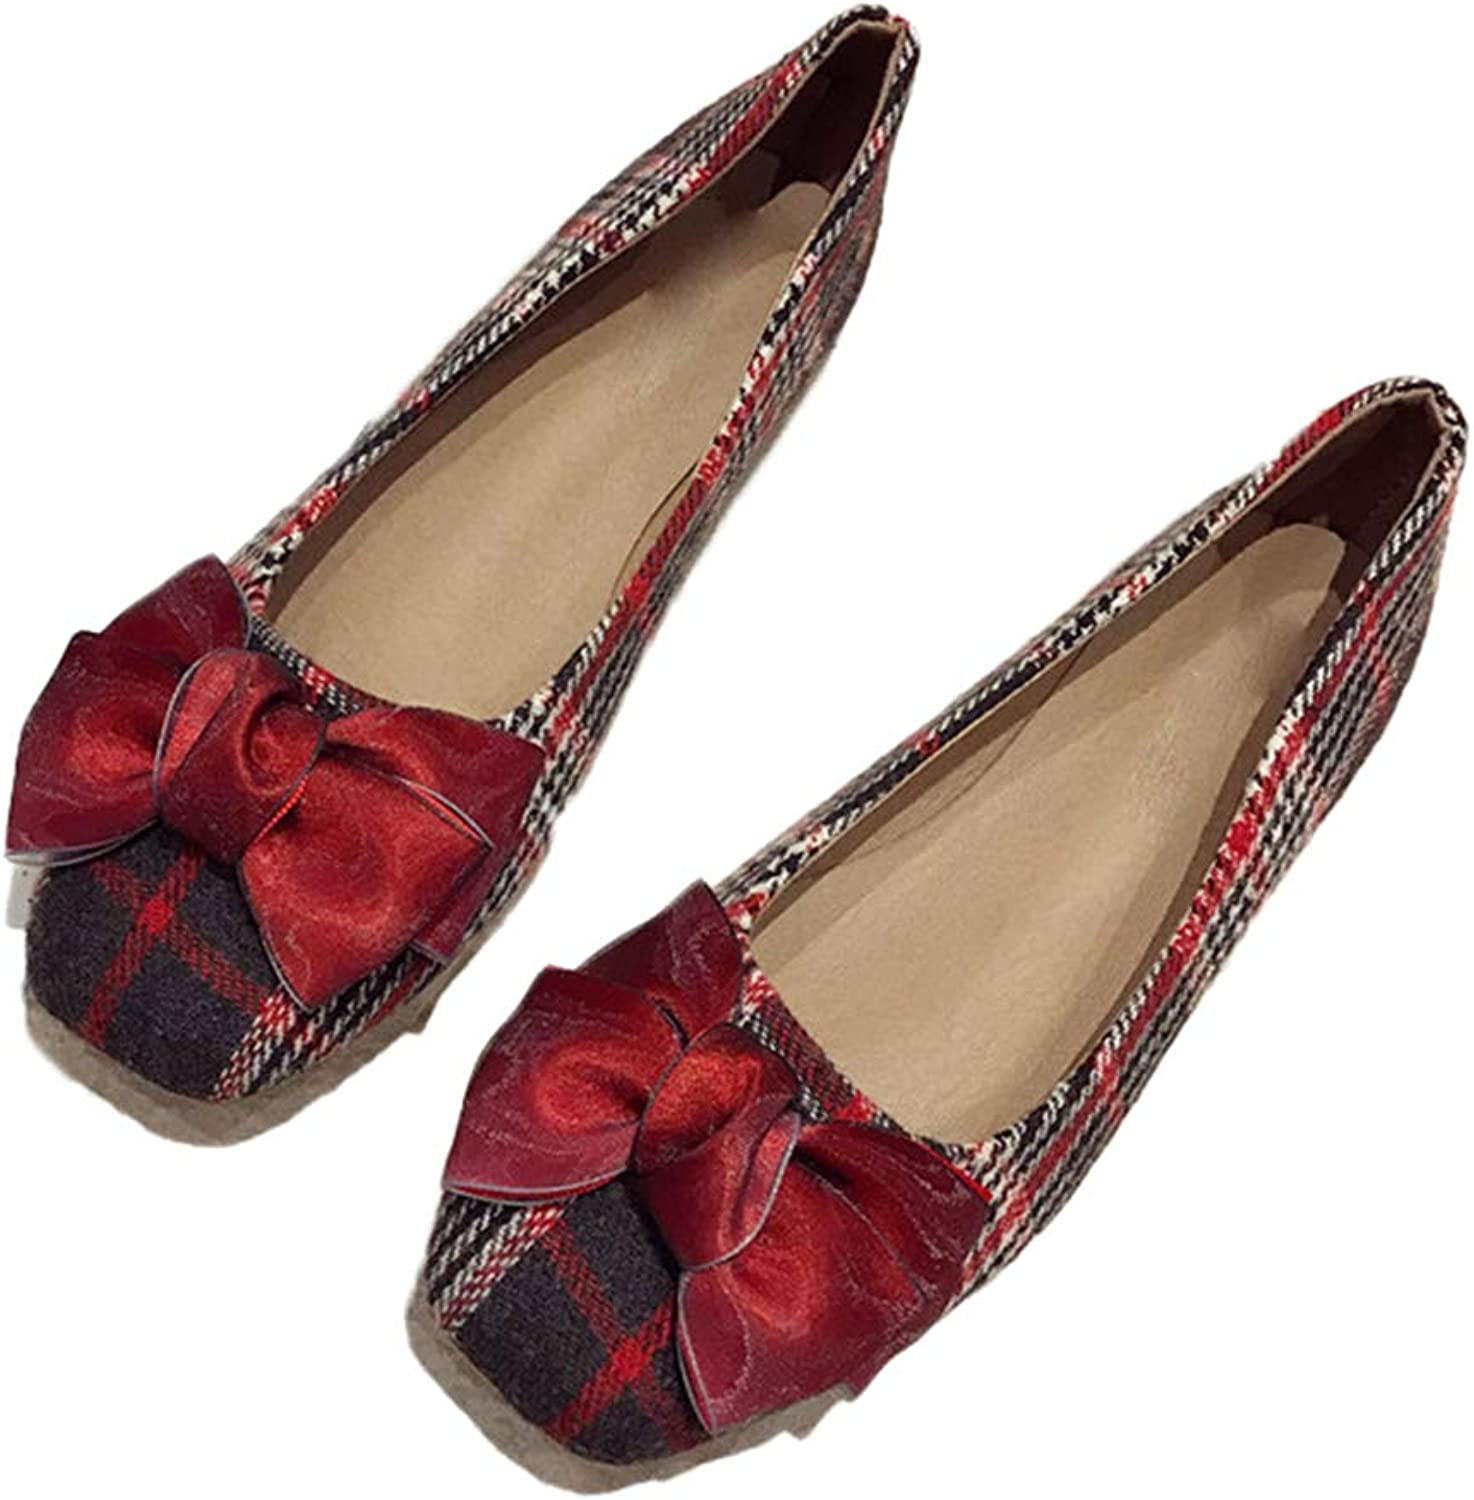 Kyle Walsh Pa Women Ballet Flats shoes Plaid Bowknot Slip-on Female Casual Soft Working Driving Footwear